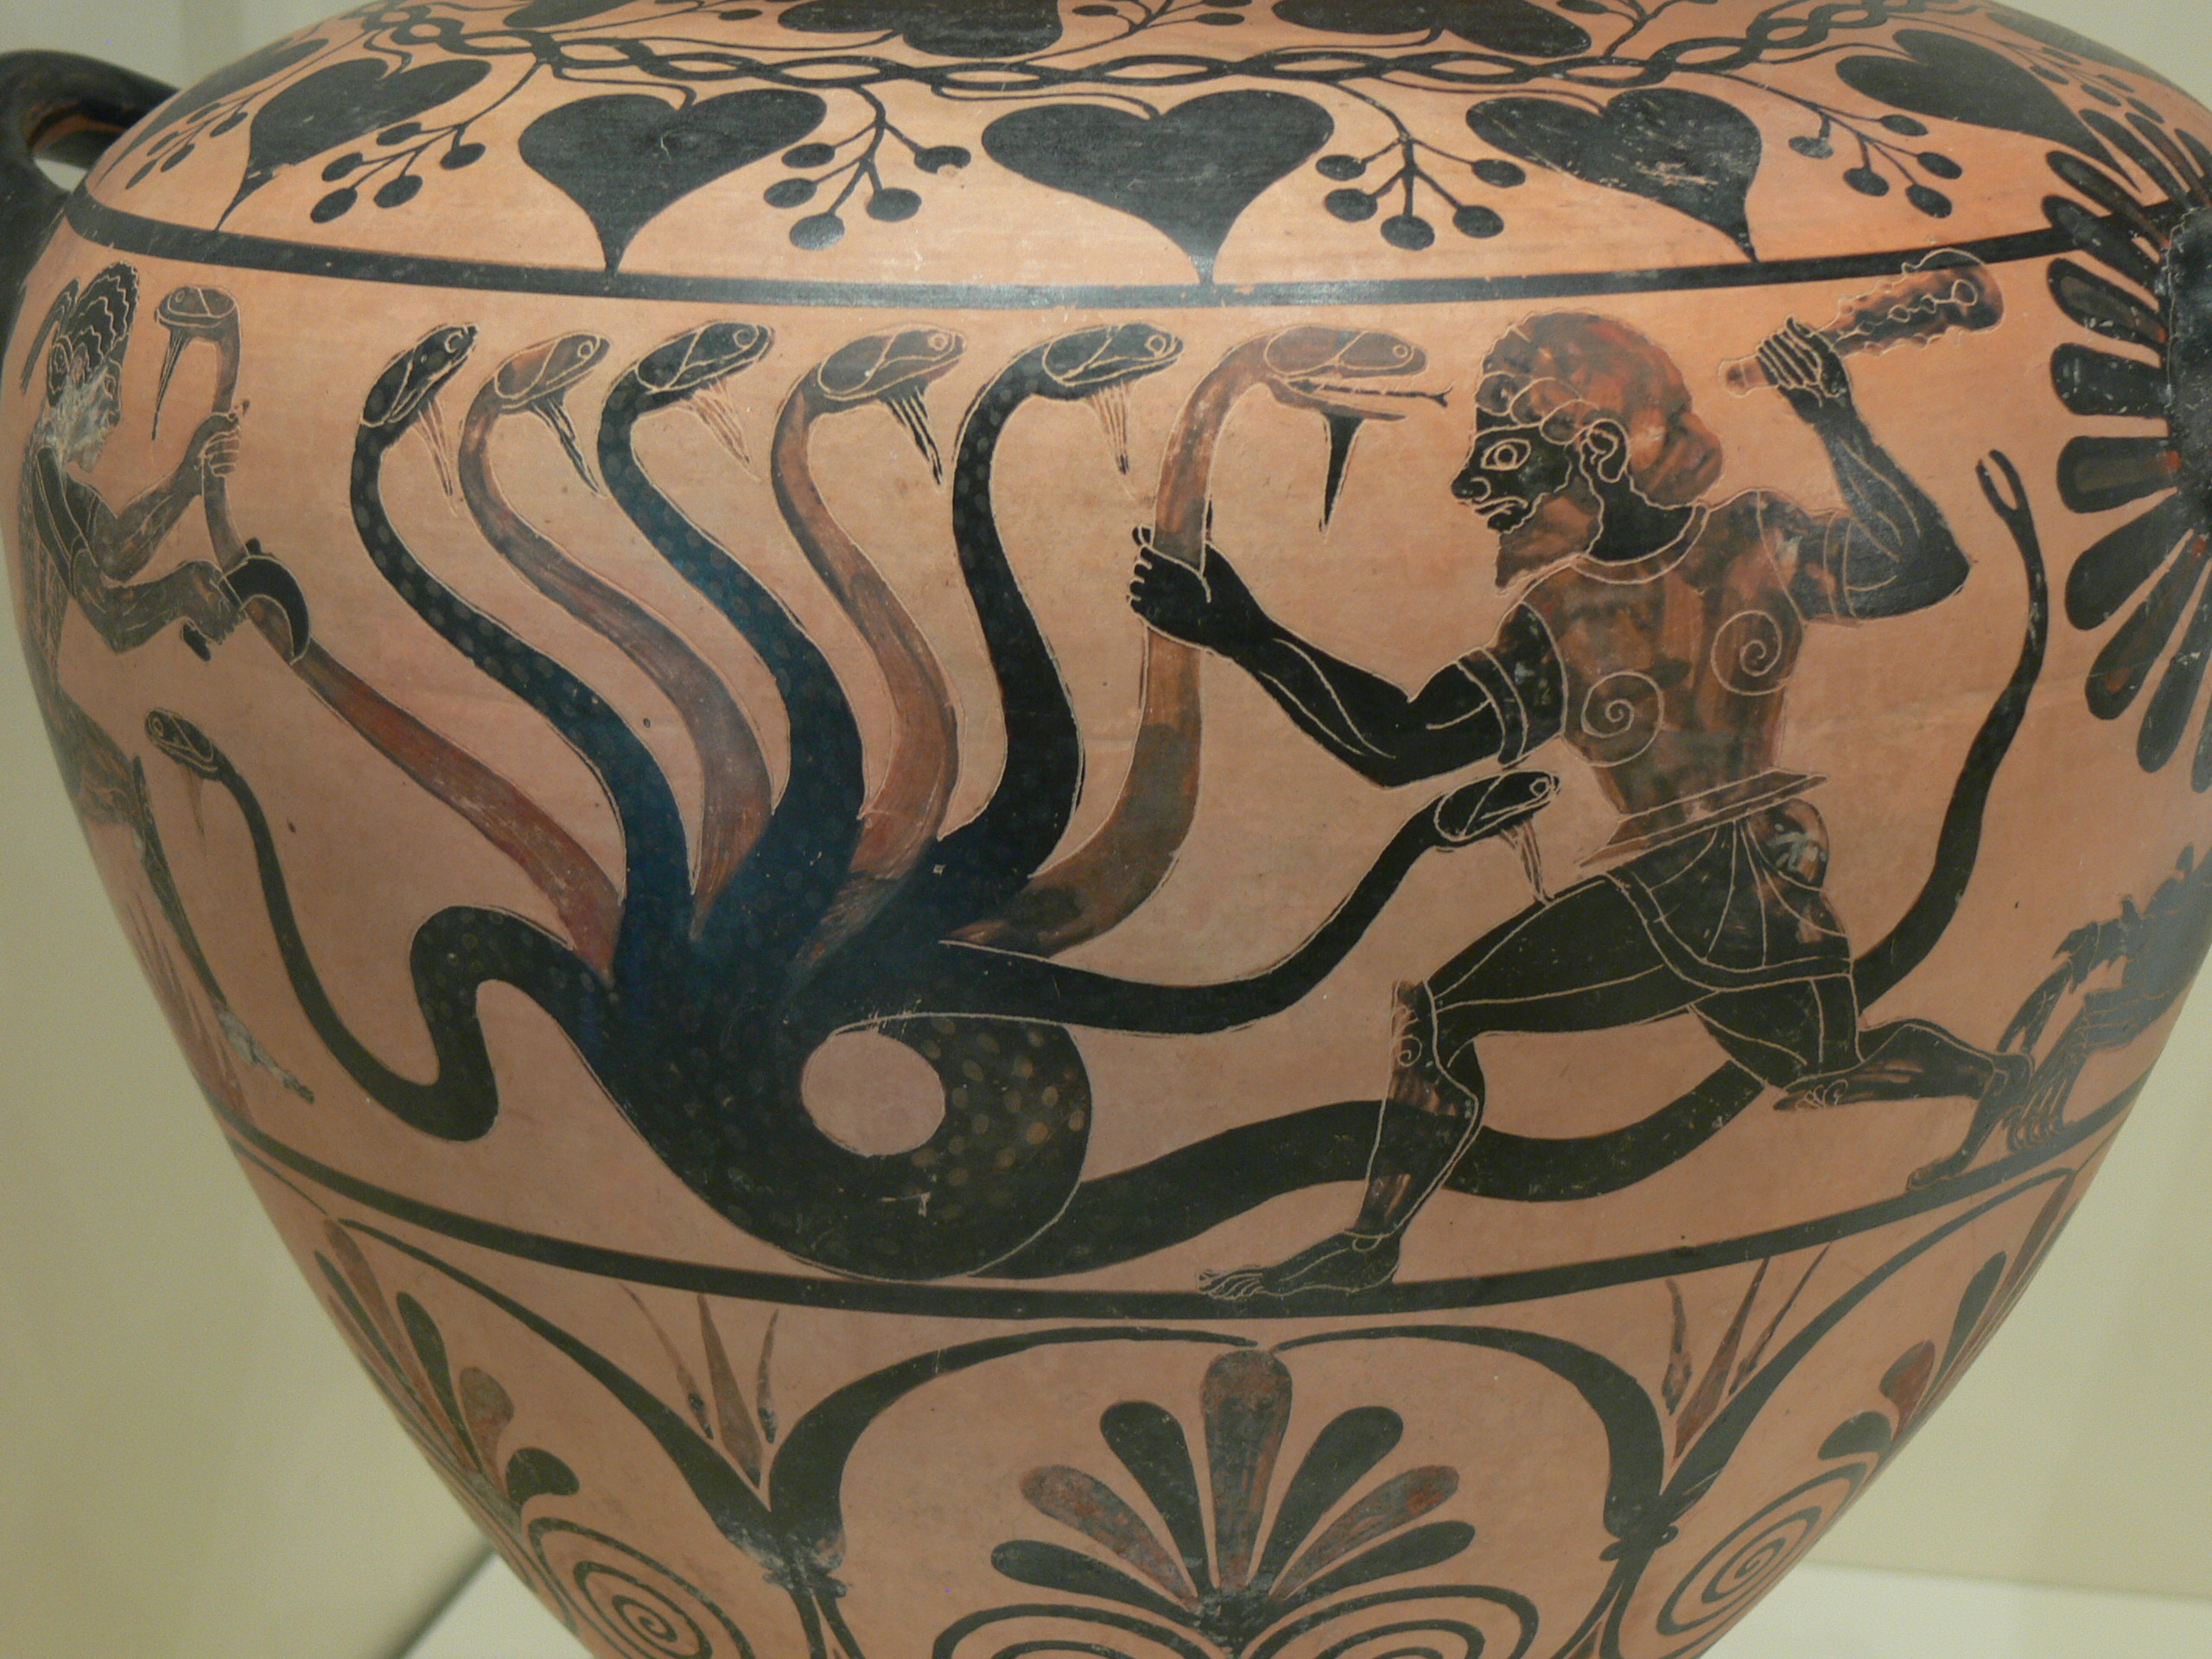 Heracles and the Leonean Hydra